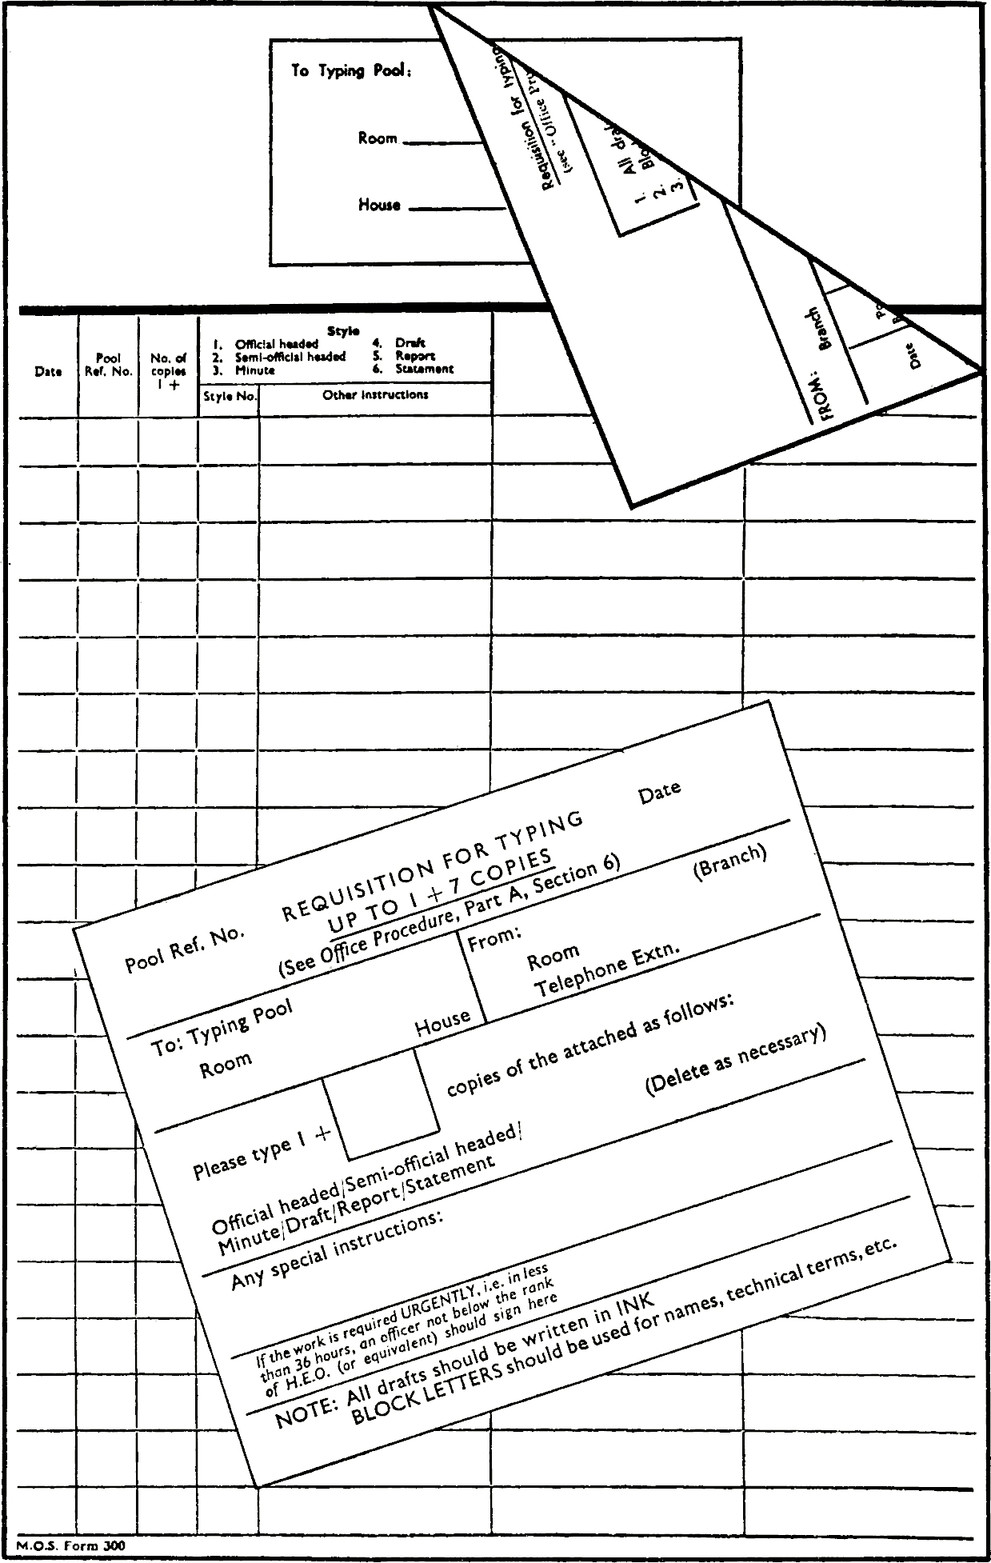 Empty form with title To Typing Pool. (M.O.S. Form 300). Room, blank field. House, blank field. Table with columns: Date, Pool Ref. No., No, of copies 1 + Style: 1\. Official headed; 2. Semi-official Headed; 3. Minute; 4. Draft; 5. Report 6. Statement. Sub columns: Style No., Other instructions. Paper on top of form with title Requisition for typing up to + 7 copies. (See Office Procedure, Part A, Section 6).3 Pool Ref. No., blank field. Date, blank field. To: Typing Pool Room, blank field. blank field, House. From:, blank field (Branch). Room, blank field. Telephone Extn., blank field. Please type 1 +, blank field, copies of the attached as follows: Official headed / Semi-official headed / Minute / Draft / Report / Statement. (Delete as necessary). Any special instructions:, blank field. If the work is required URGENTLY, i.e. in less than 36 hours, an officer not below the rank of H.E.O. (or equivalent) should sign here. NOTE: All drafts should be written in INK BLOCK LETTERS should be used for names, technical terms, etc.